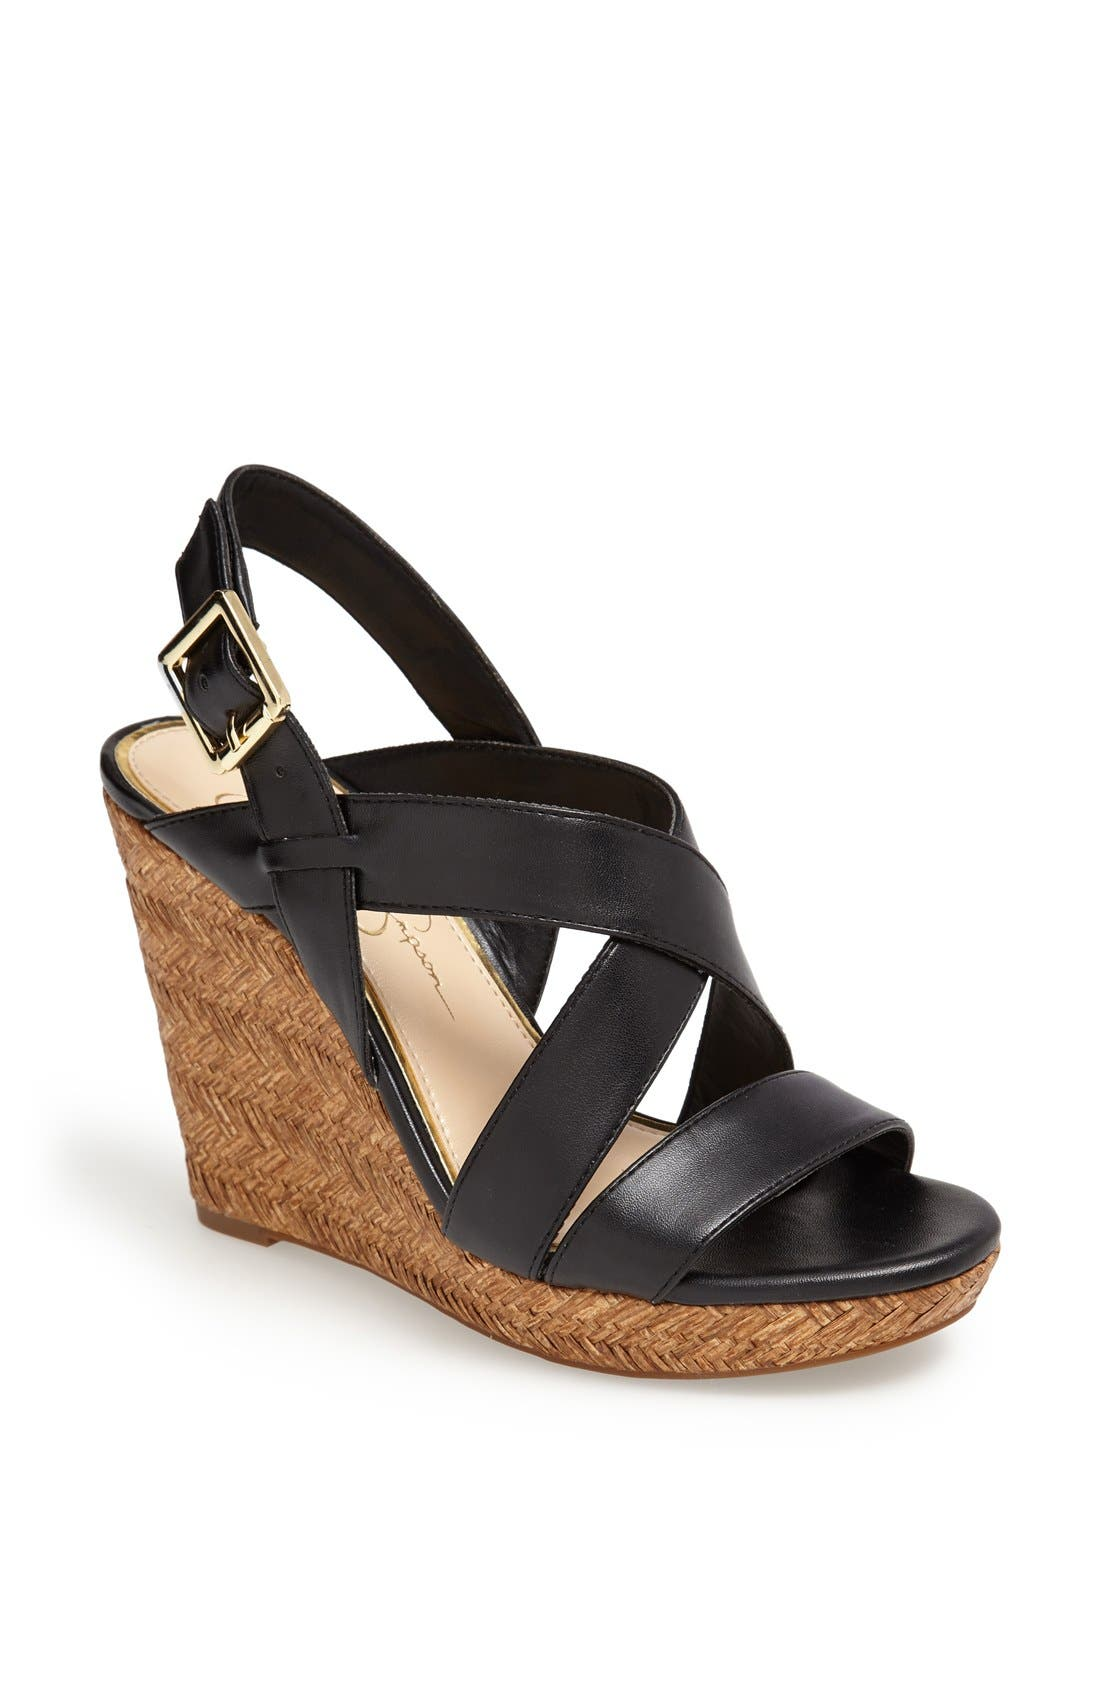 Alternate Image 1 Selected - Jessica Simpson 'Jerrimo' Basket Woven Wedge Sandal